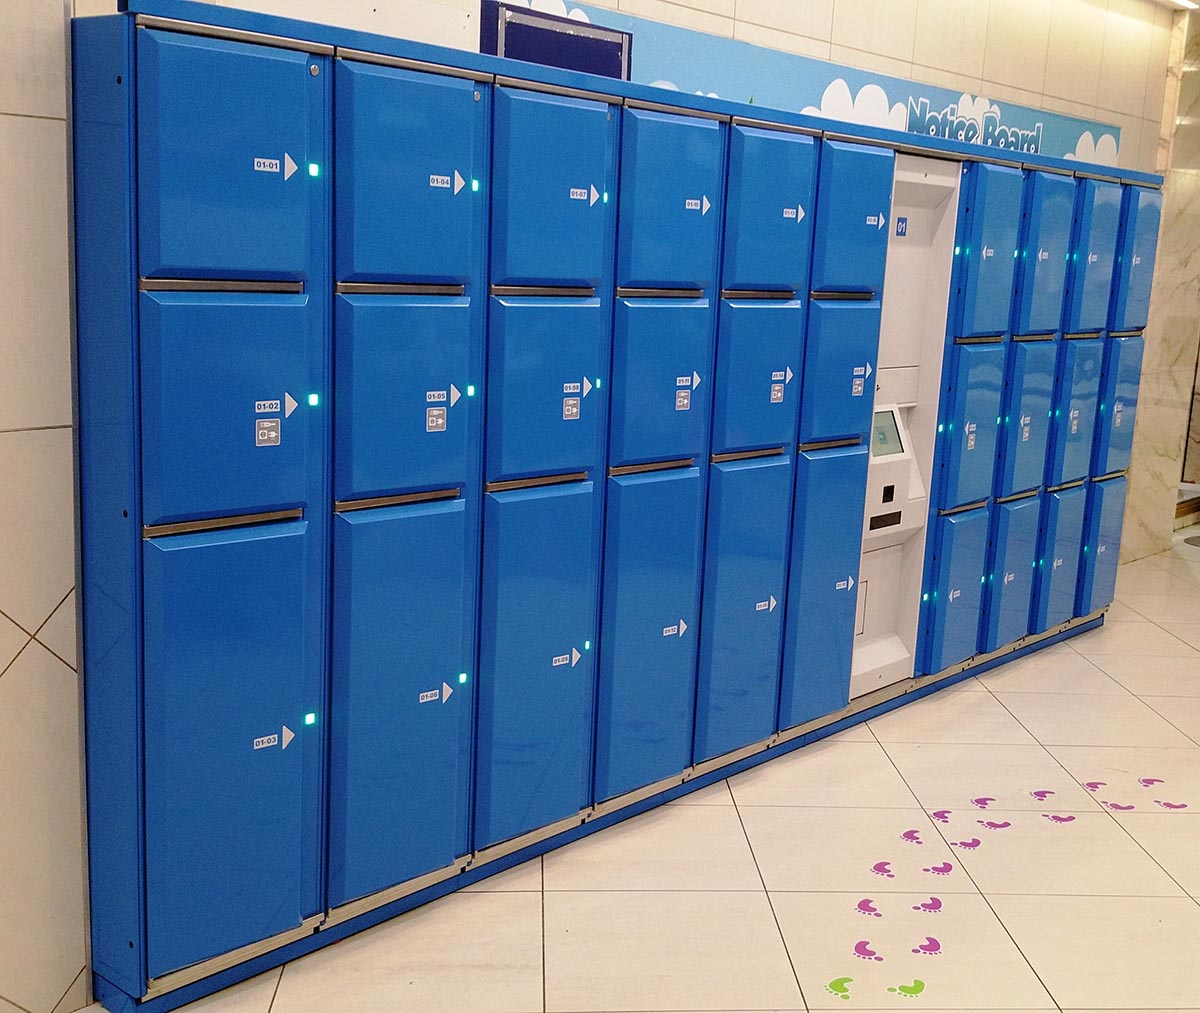 Smart lockers Locksafe5 – steel lockers with power chargers in each locker compartment to charge electronic devices.